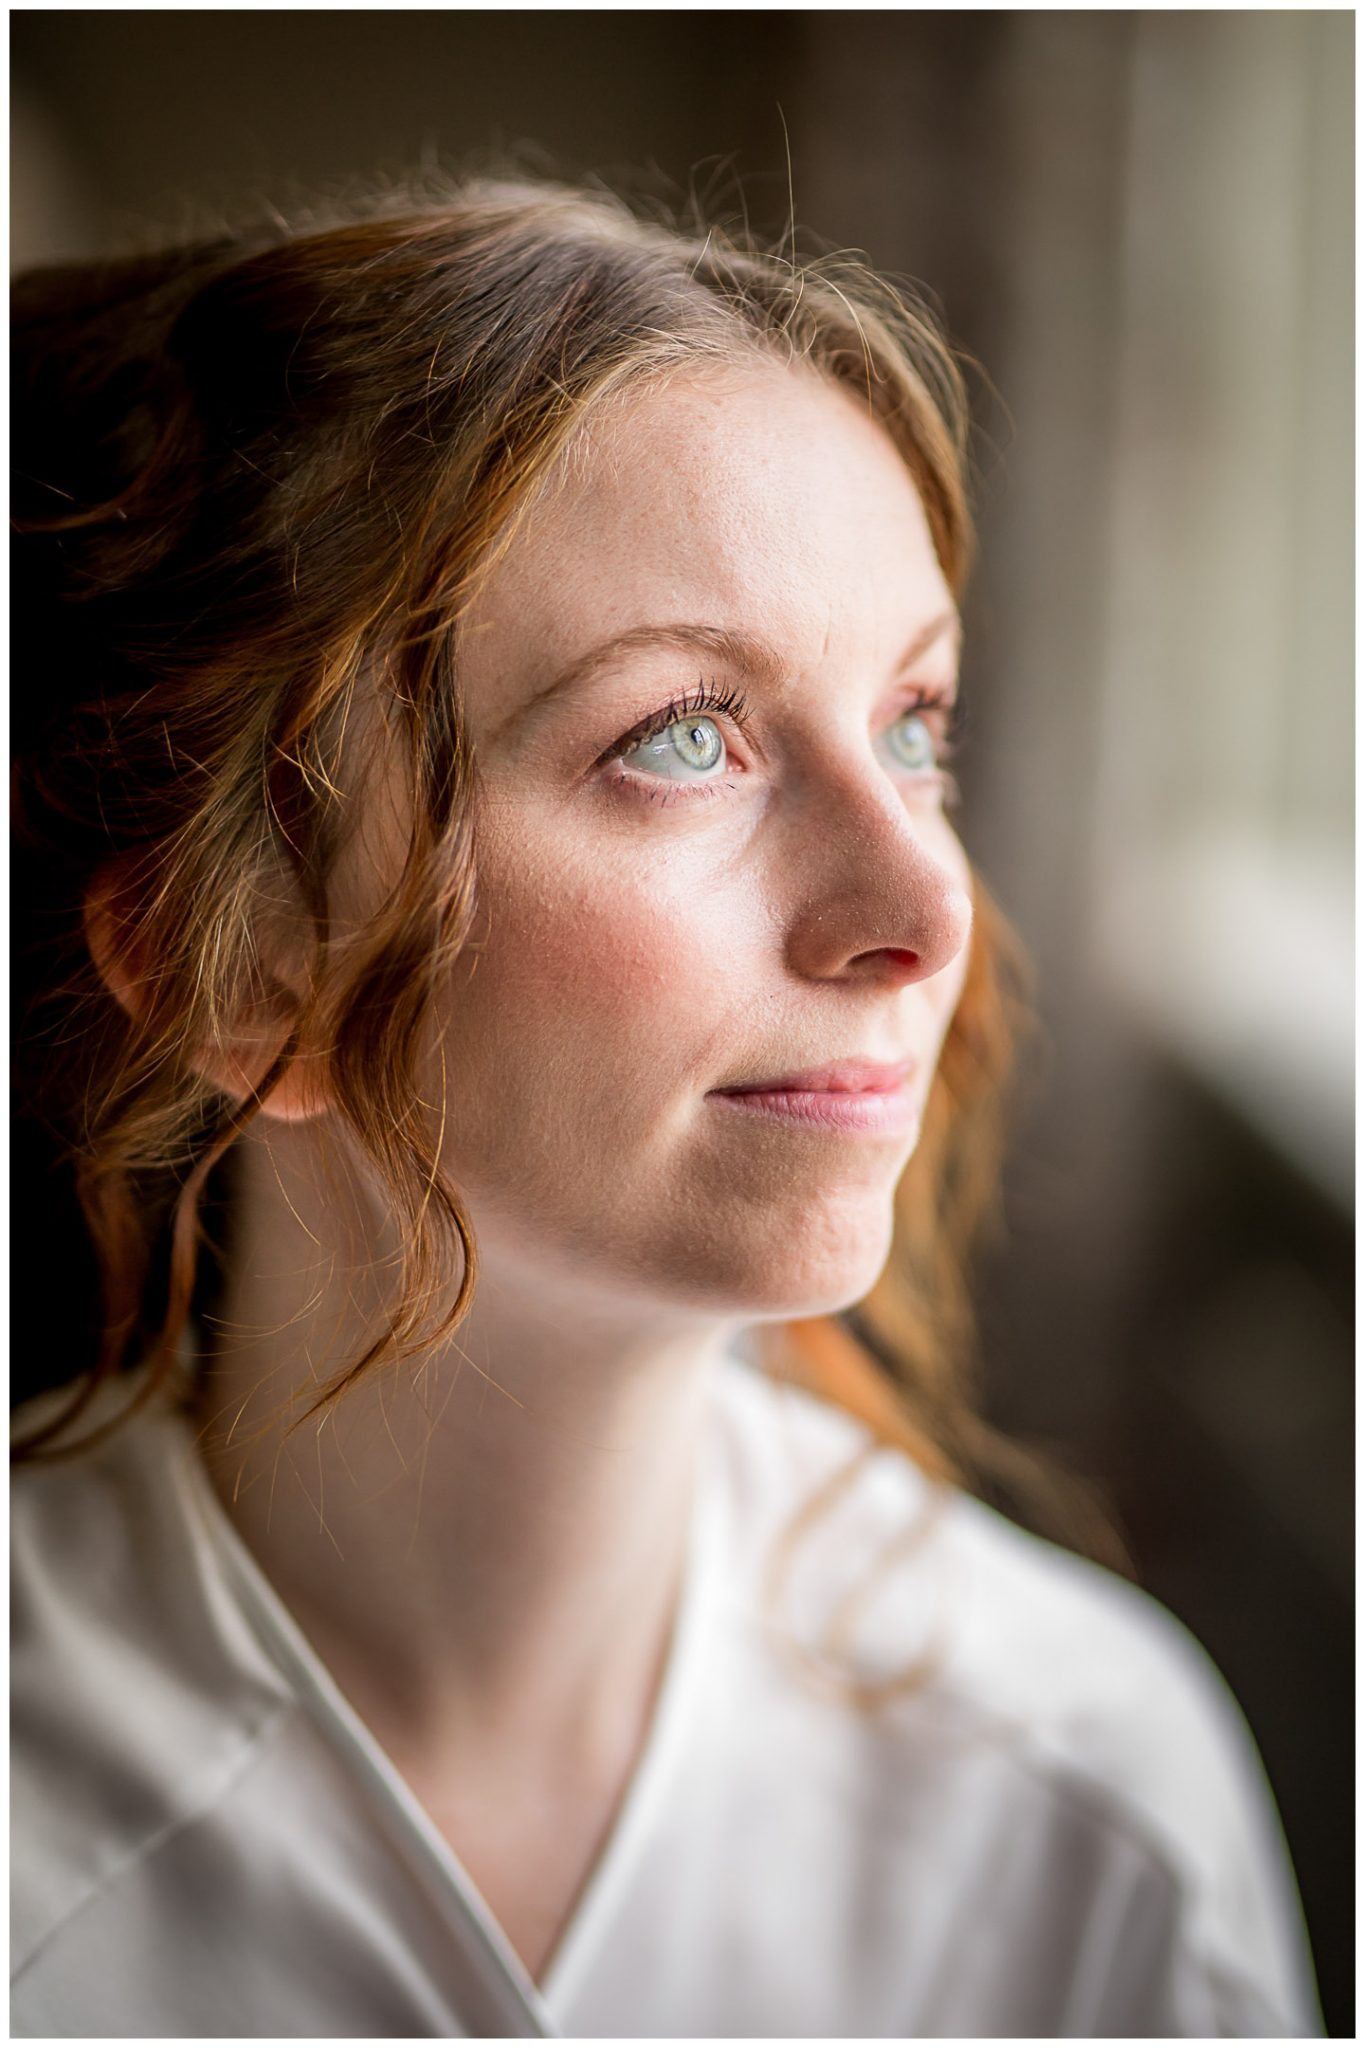 Bridal portrait during hair and makeup before the ceremony, using natural window light